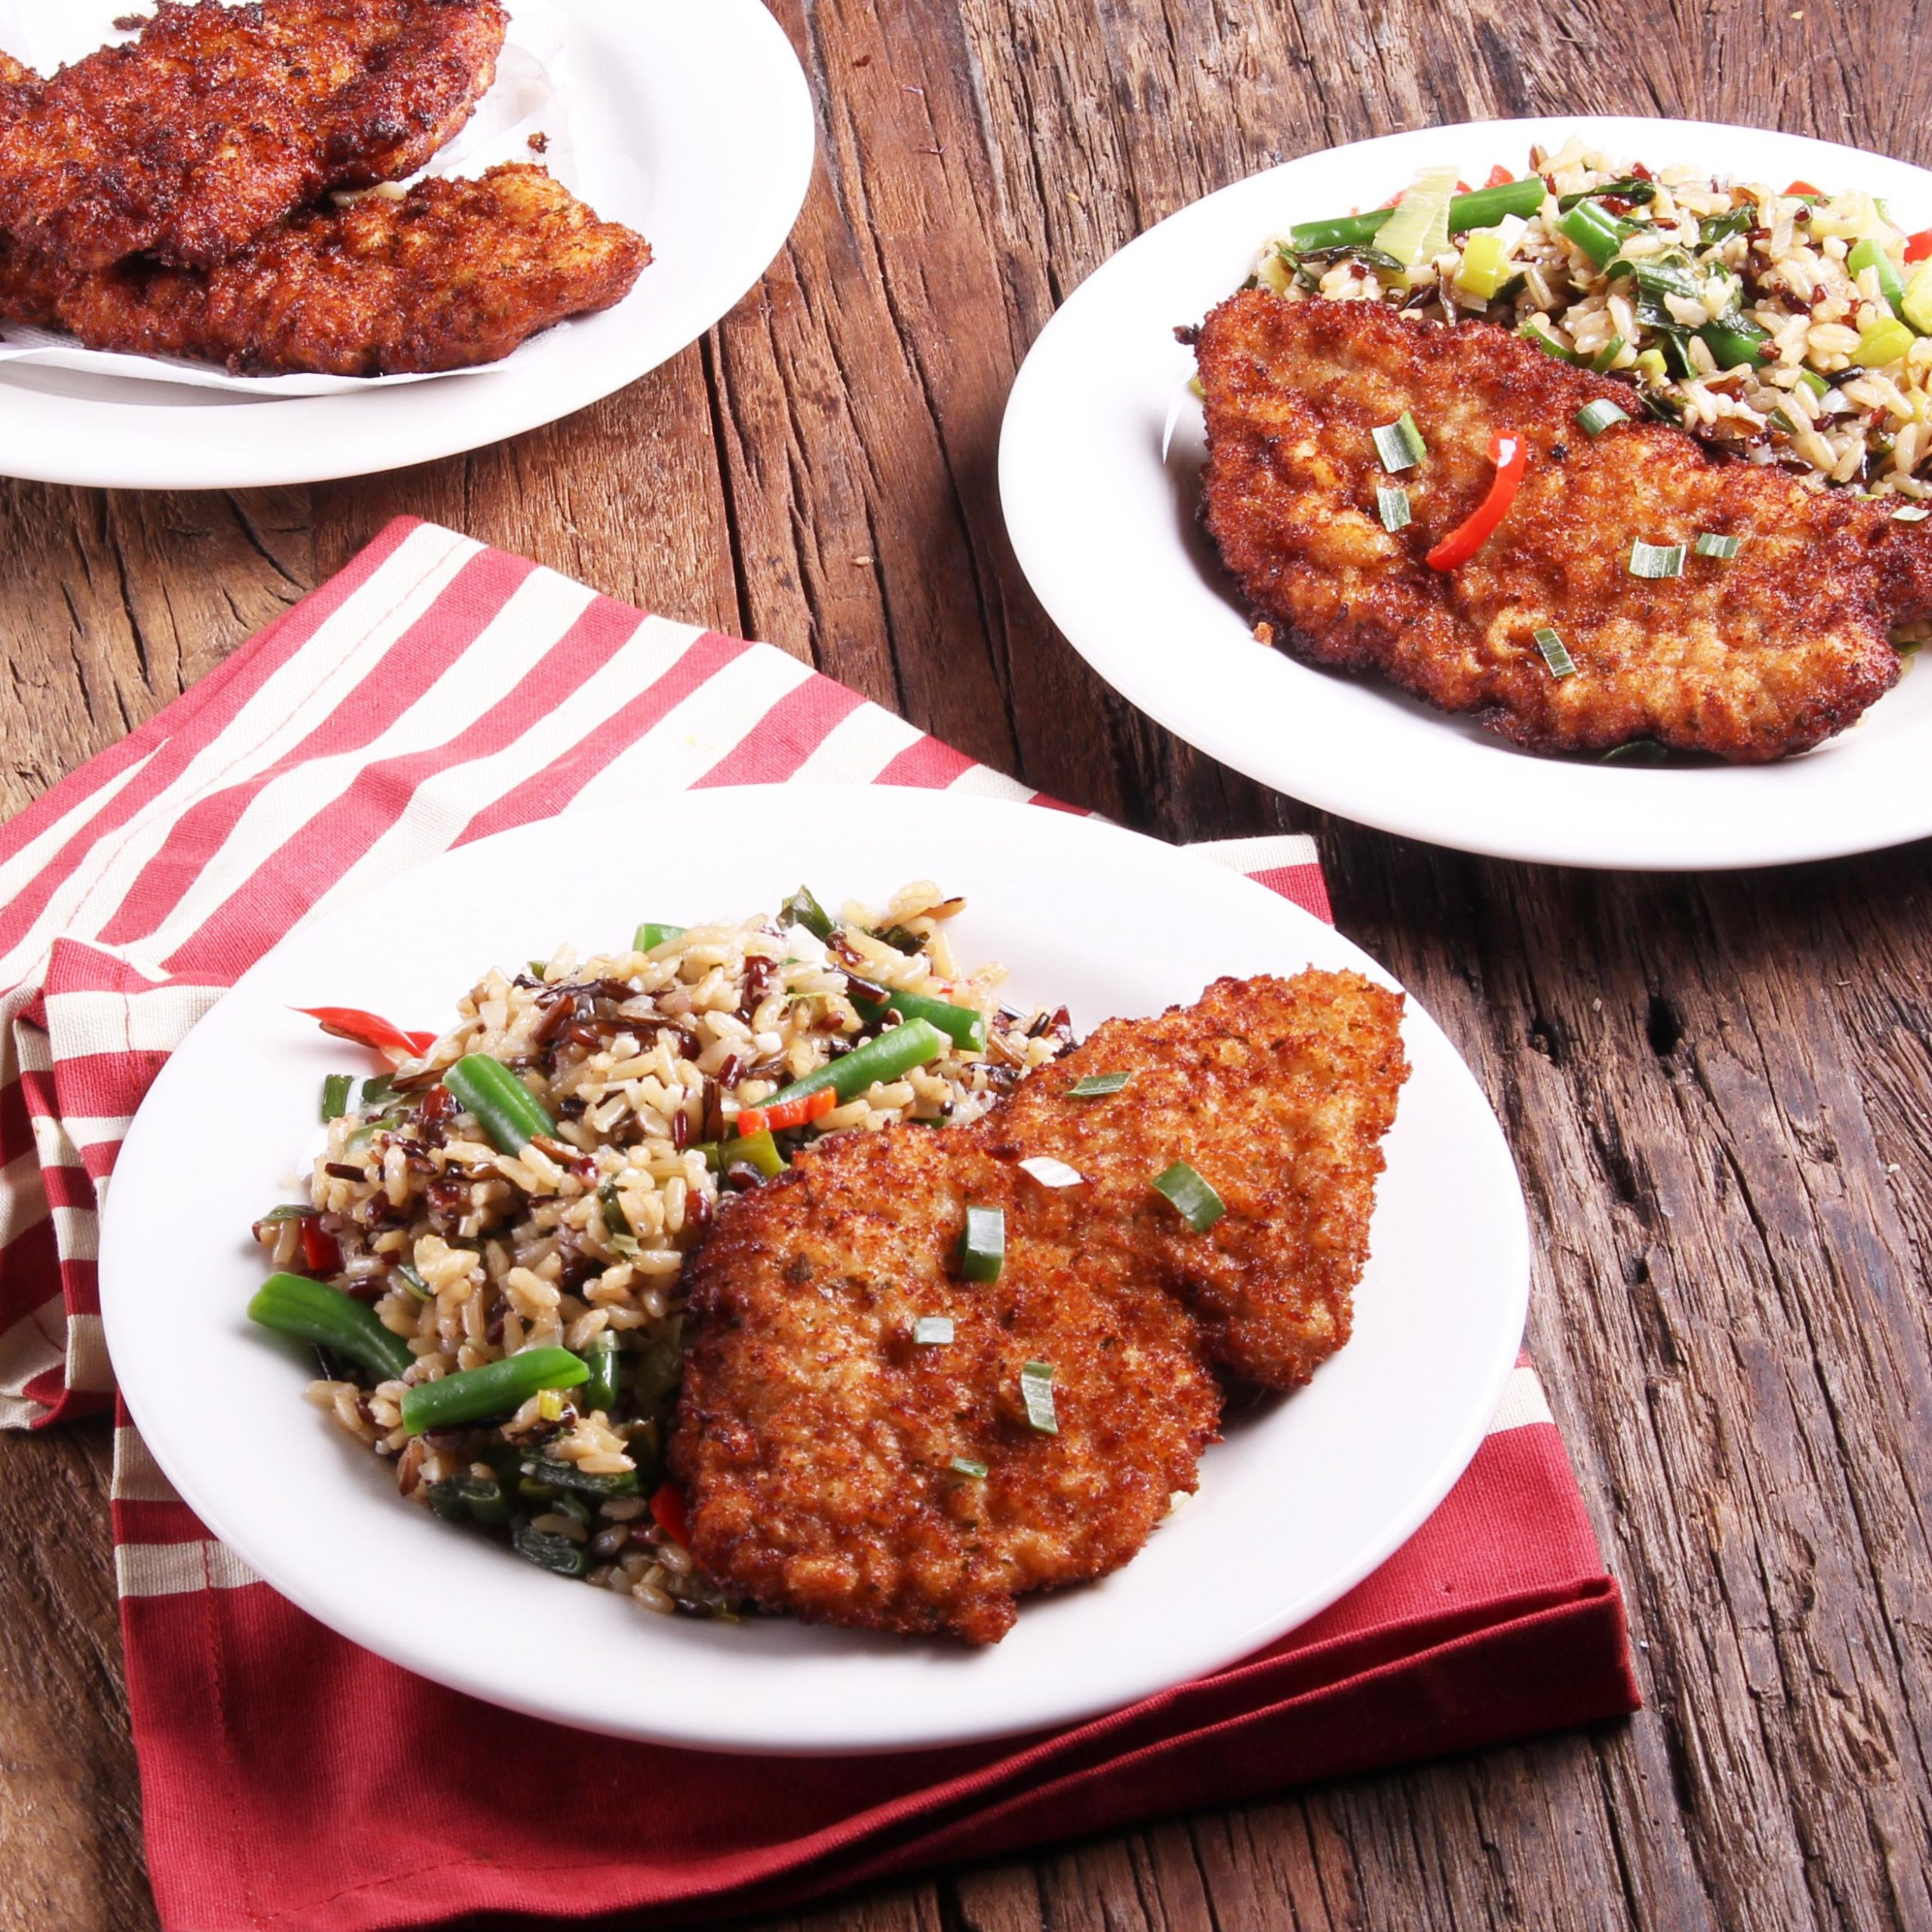 chnitzel With Buttered Wild Rice And Green Beans